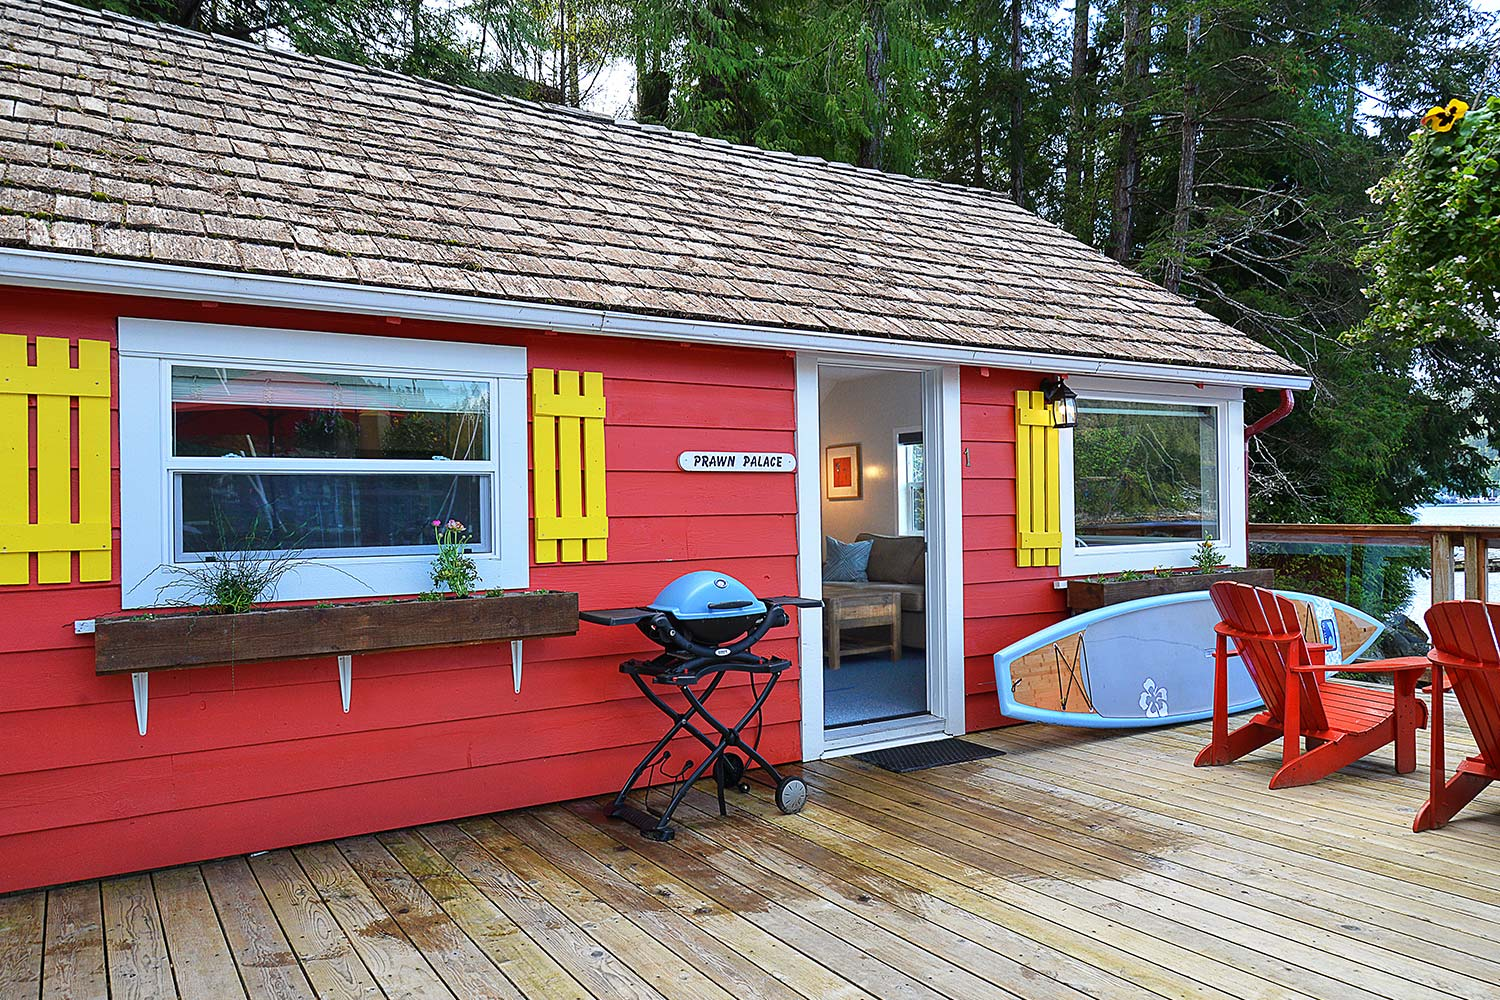 A Weber BBQ and stand-up paddleboard on the front deck of Prawn Palace. A cute cottage situated over the Pender Harbour.